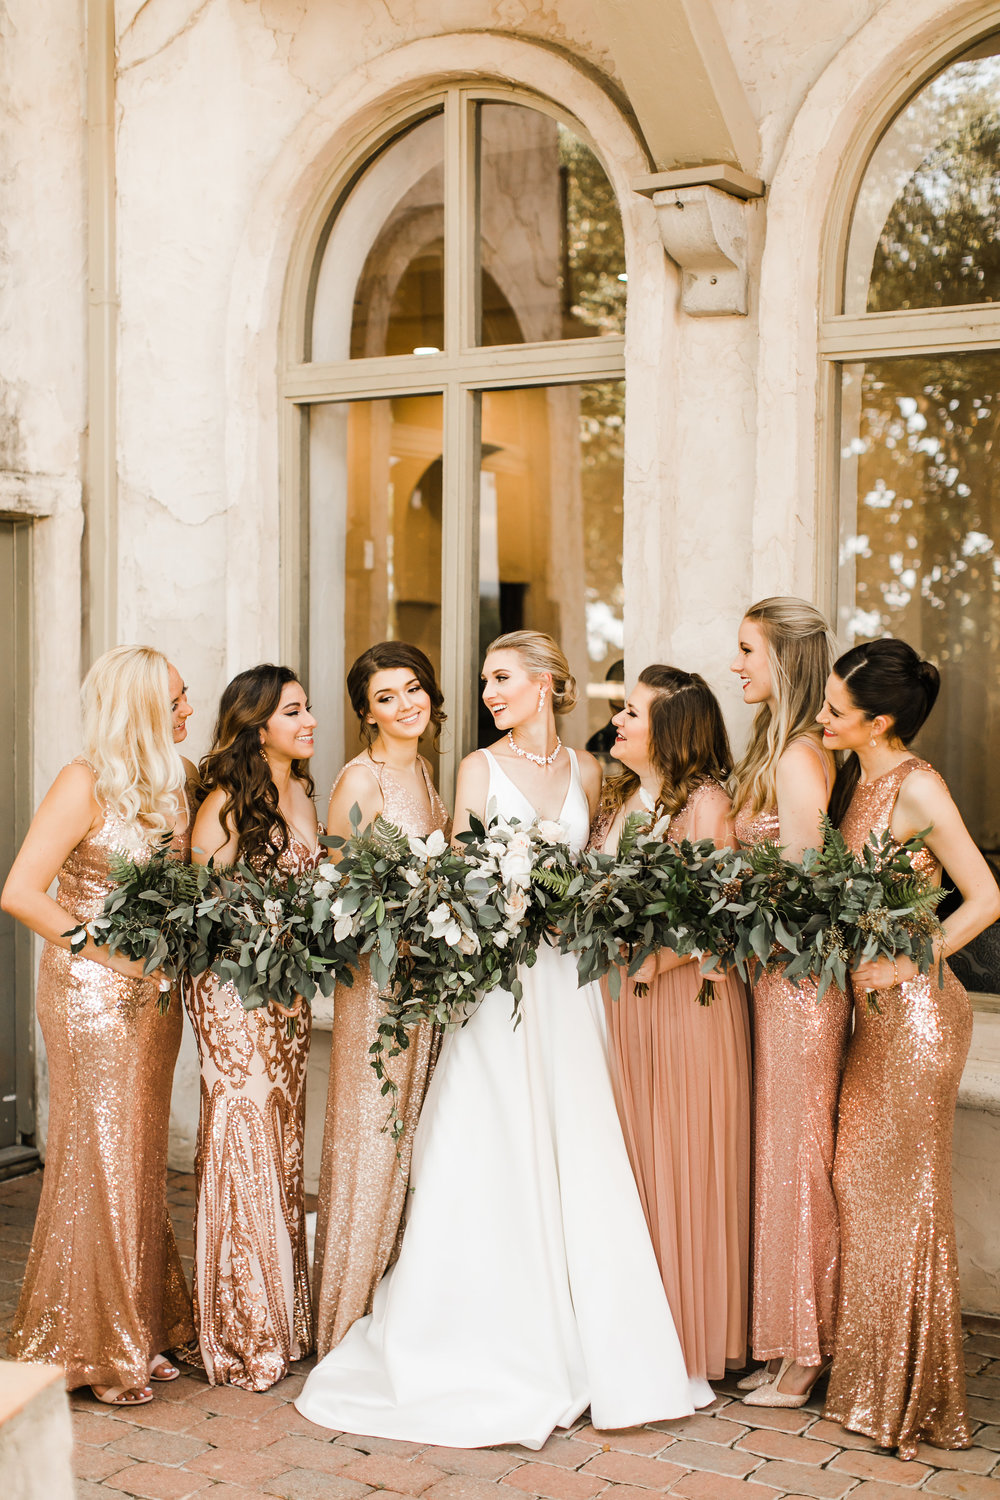 Reilee+SarahWeddingParty-75.jpg